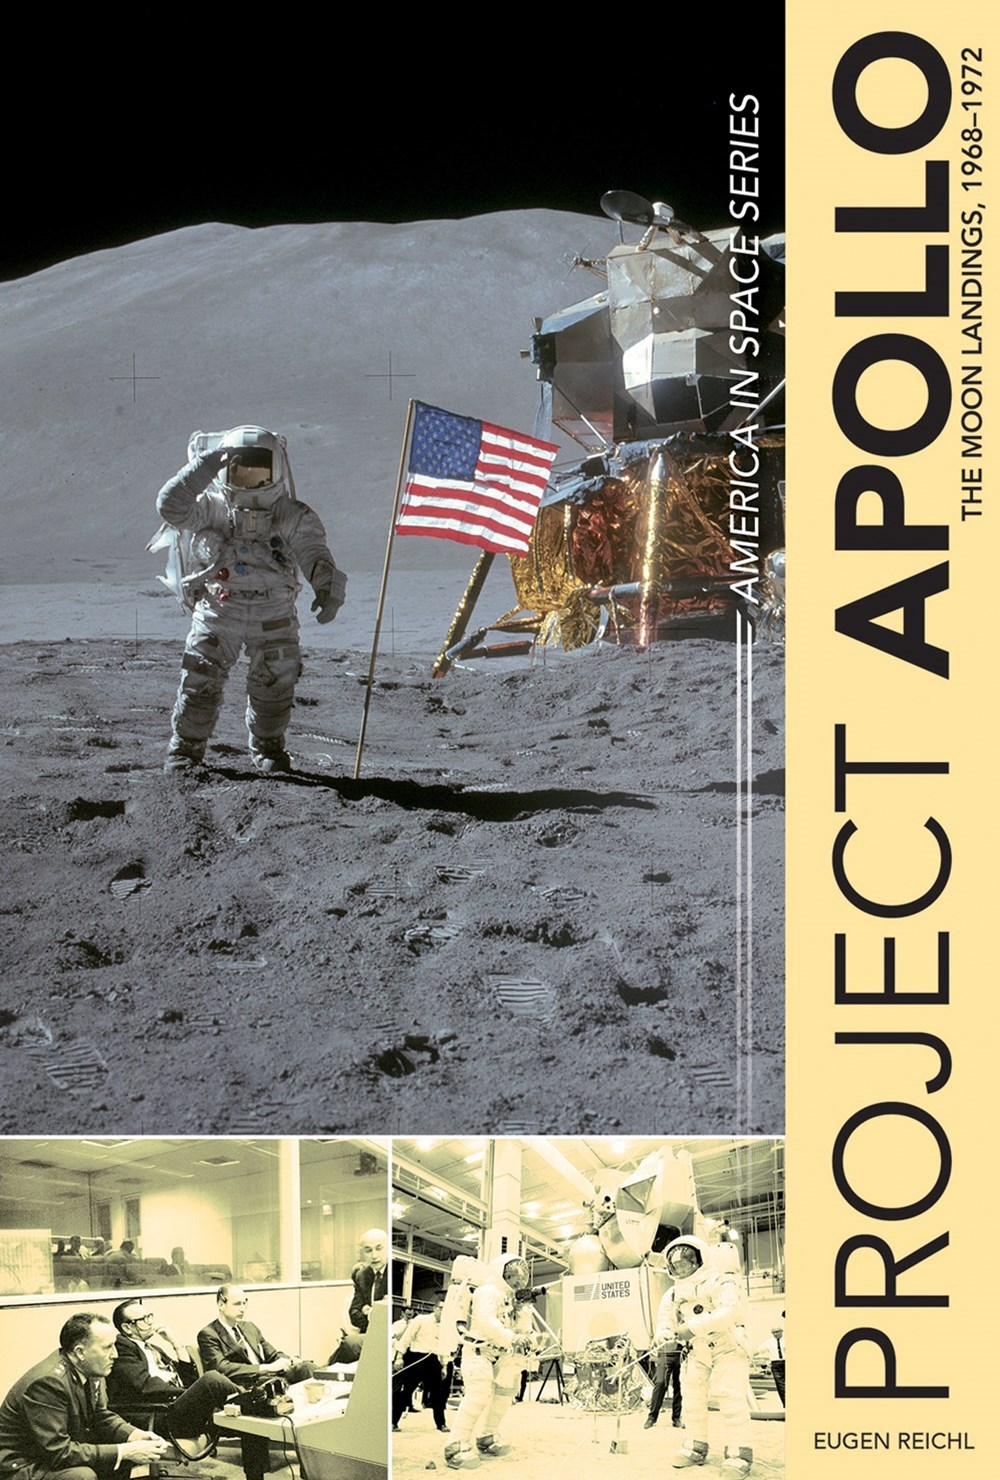 Project Apollo: The Moon Landings, 1968 - 1972